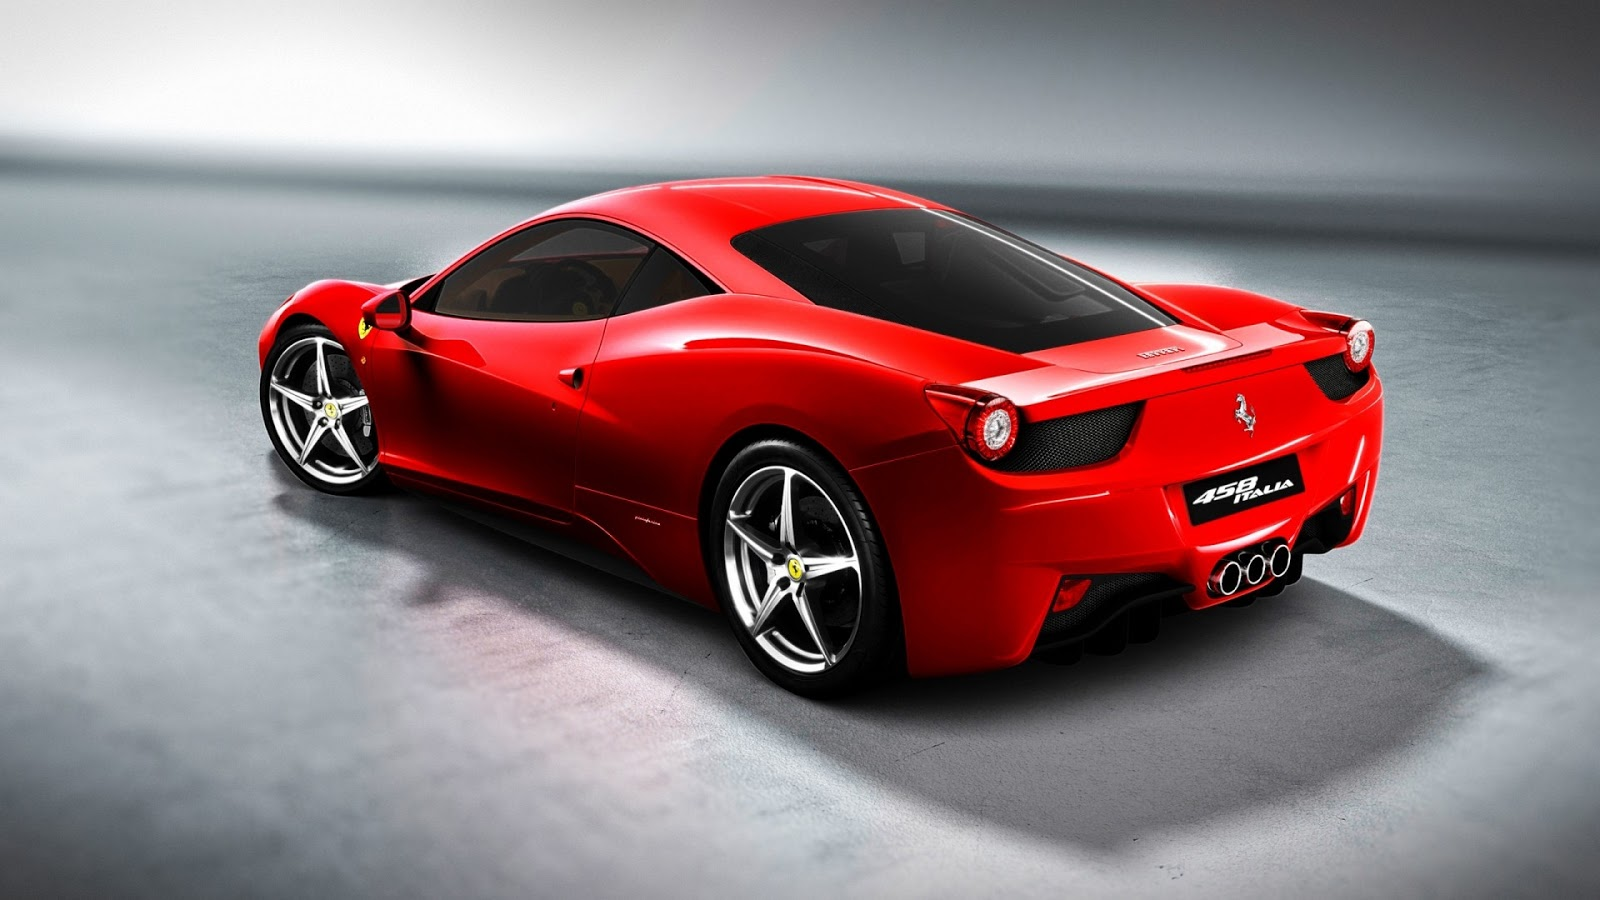 red ferrari wallpaper hd - photo #25